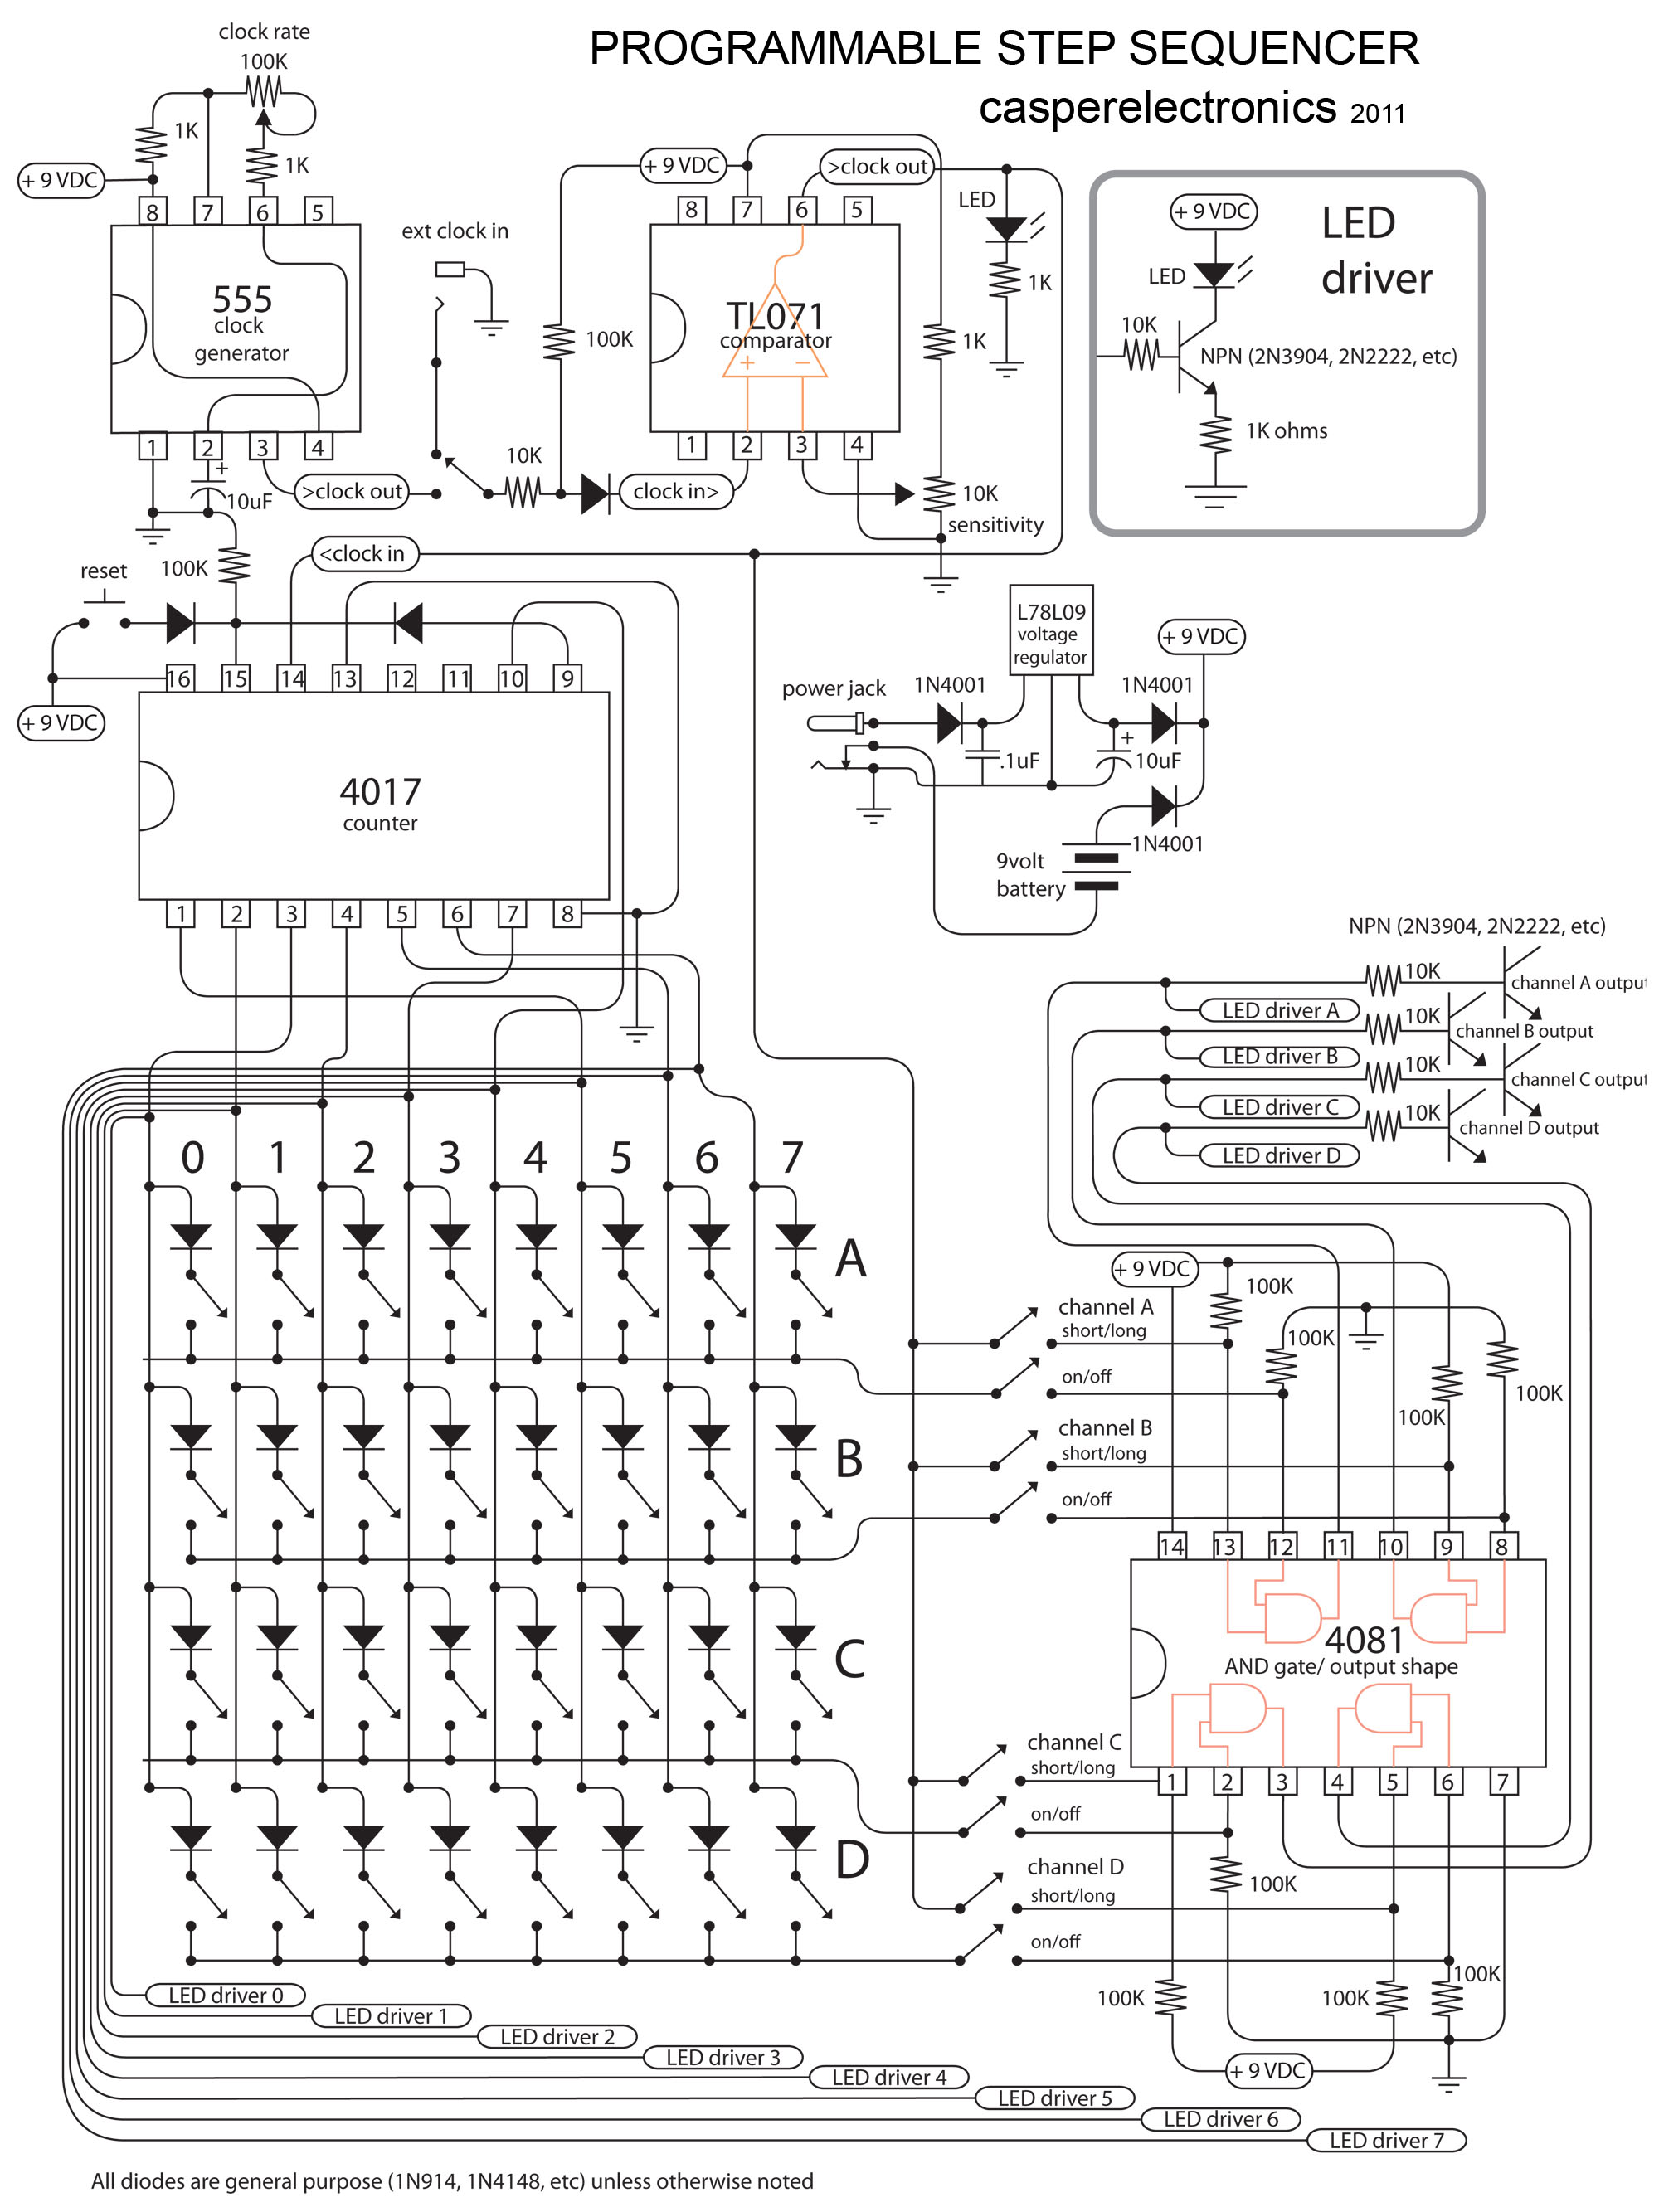 electro-music.com wiki | Schematics / Step Sequencer By Casper ...